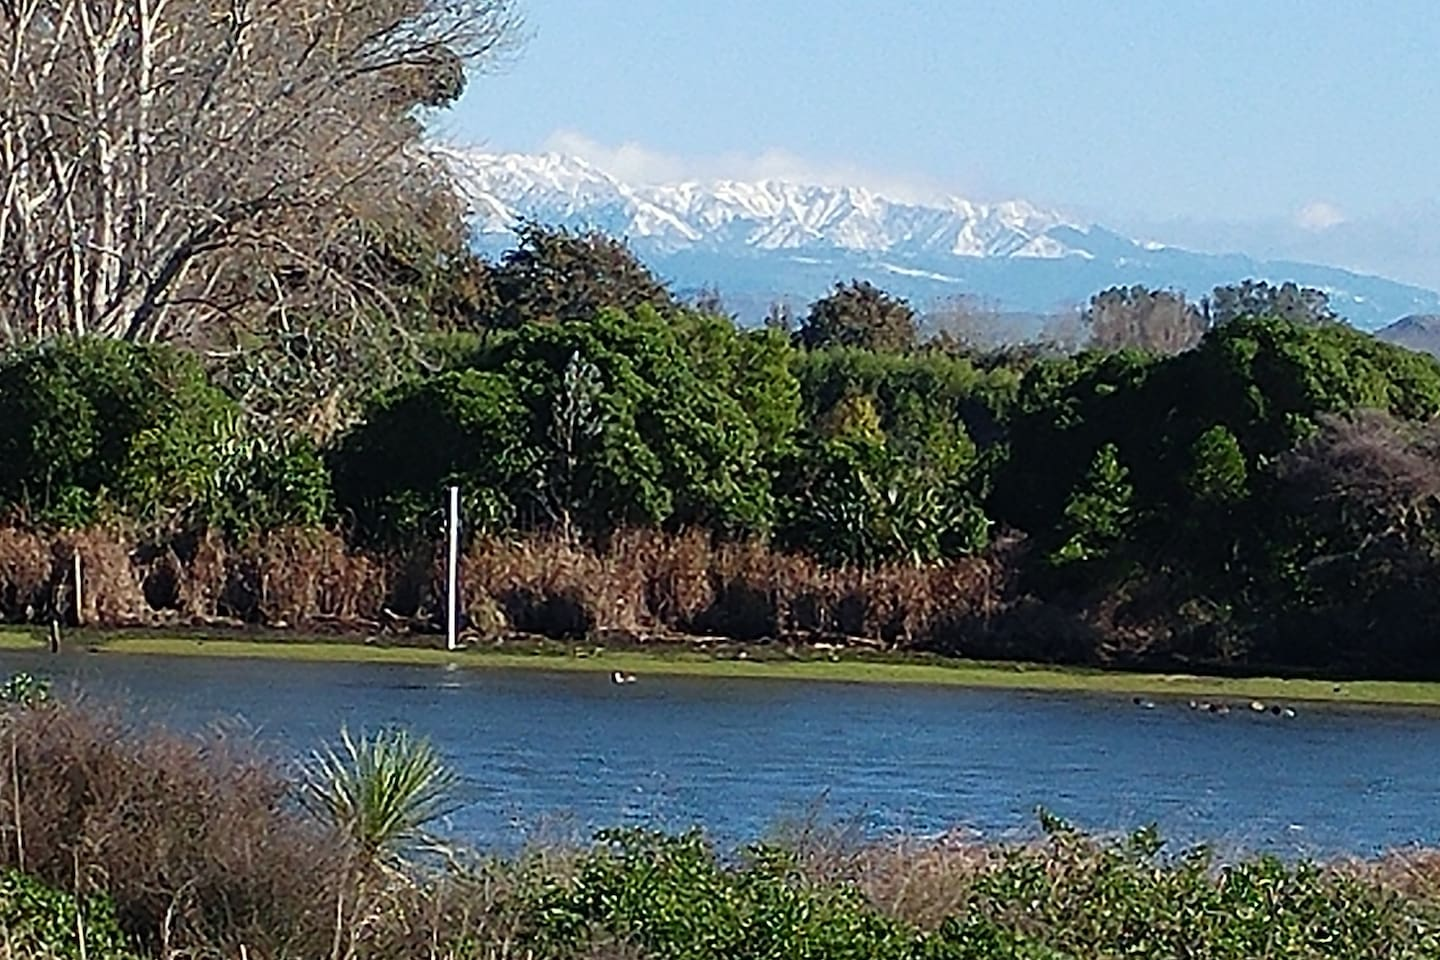 Wintertime in the distance, in Sunny Hawkes Bay